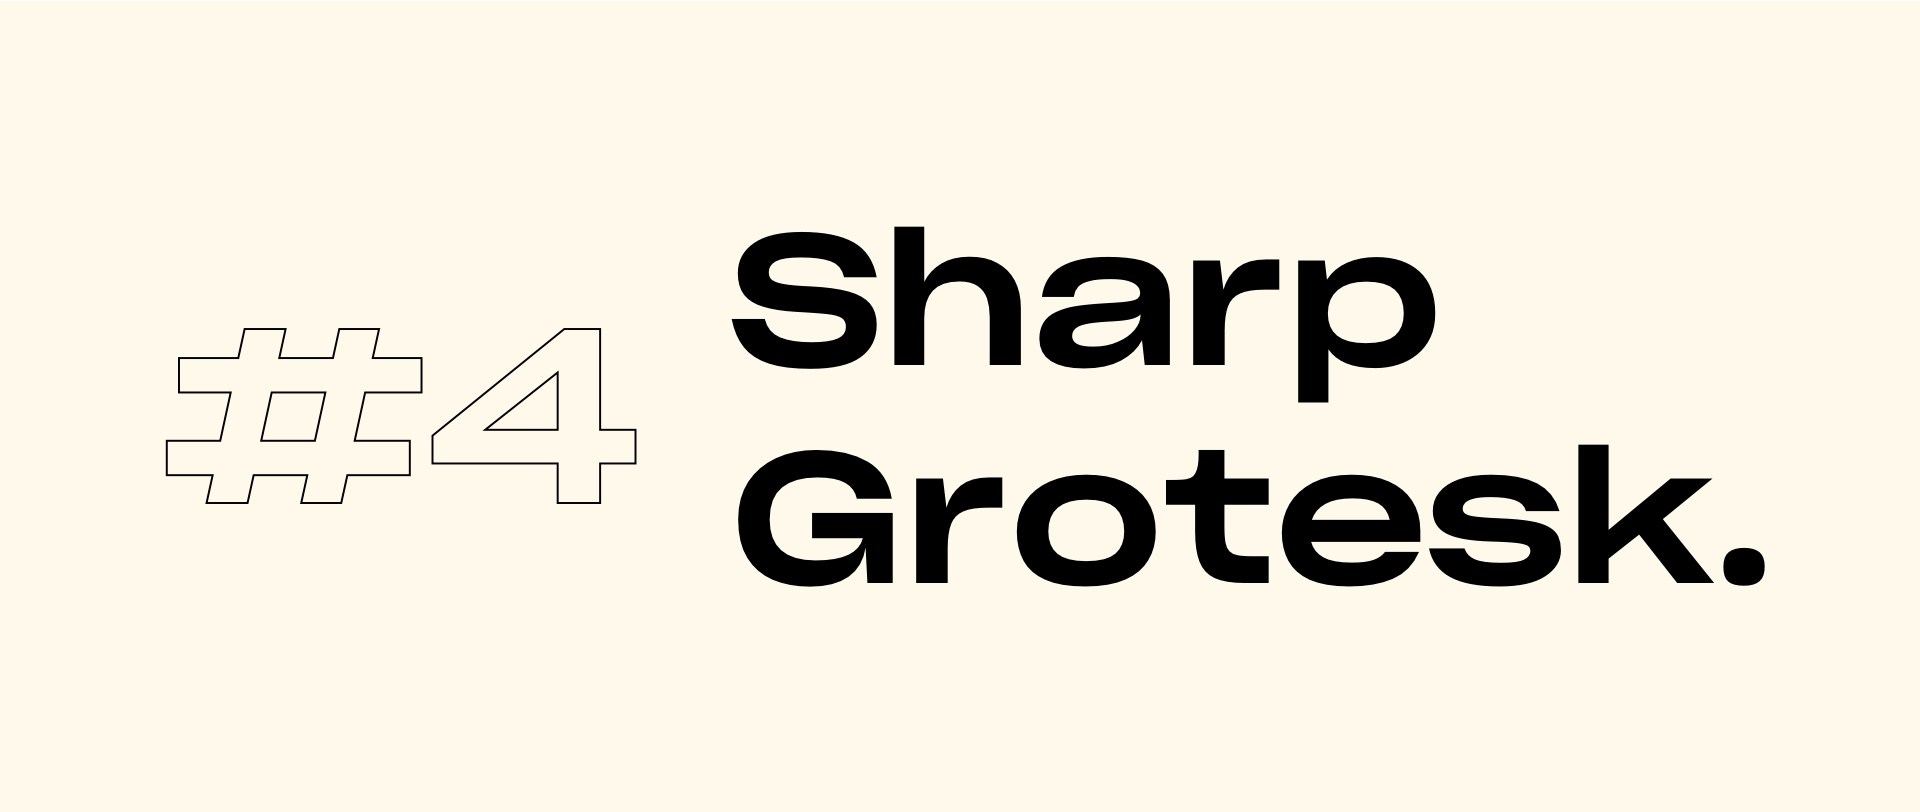 Sharp Grotesk font | Top 5 fonts for 2020 by StanVision